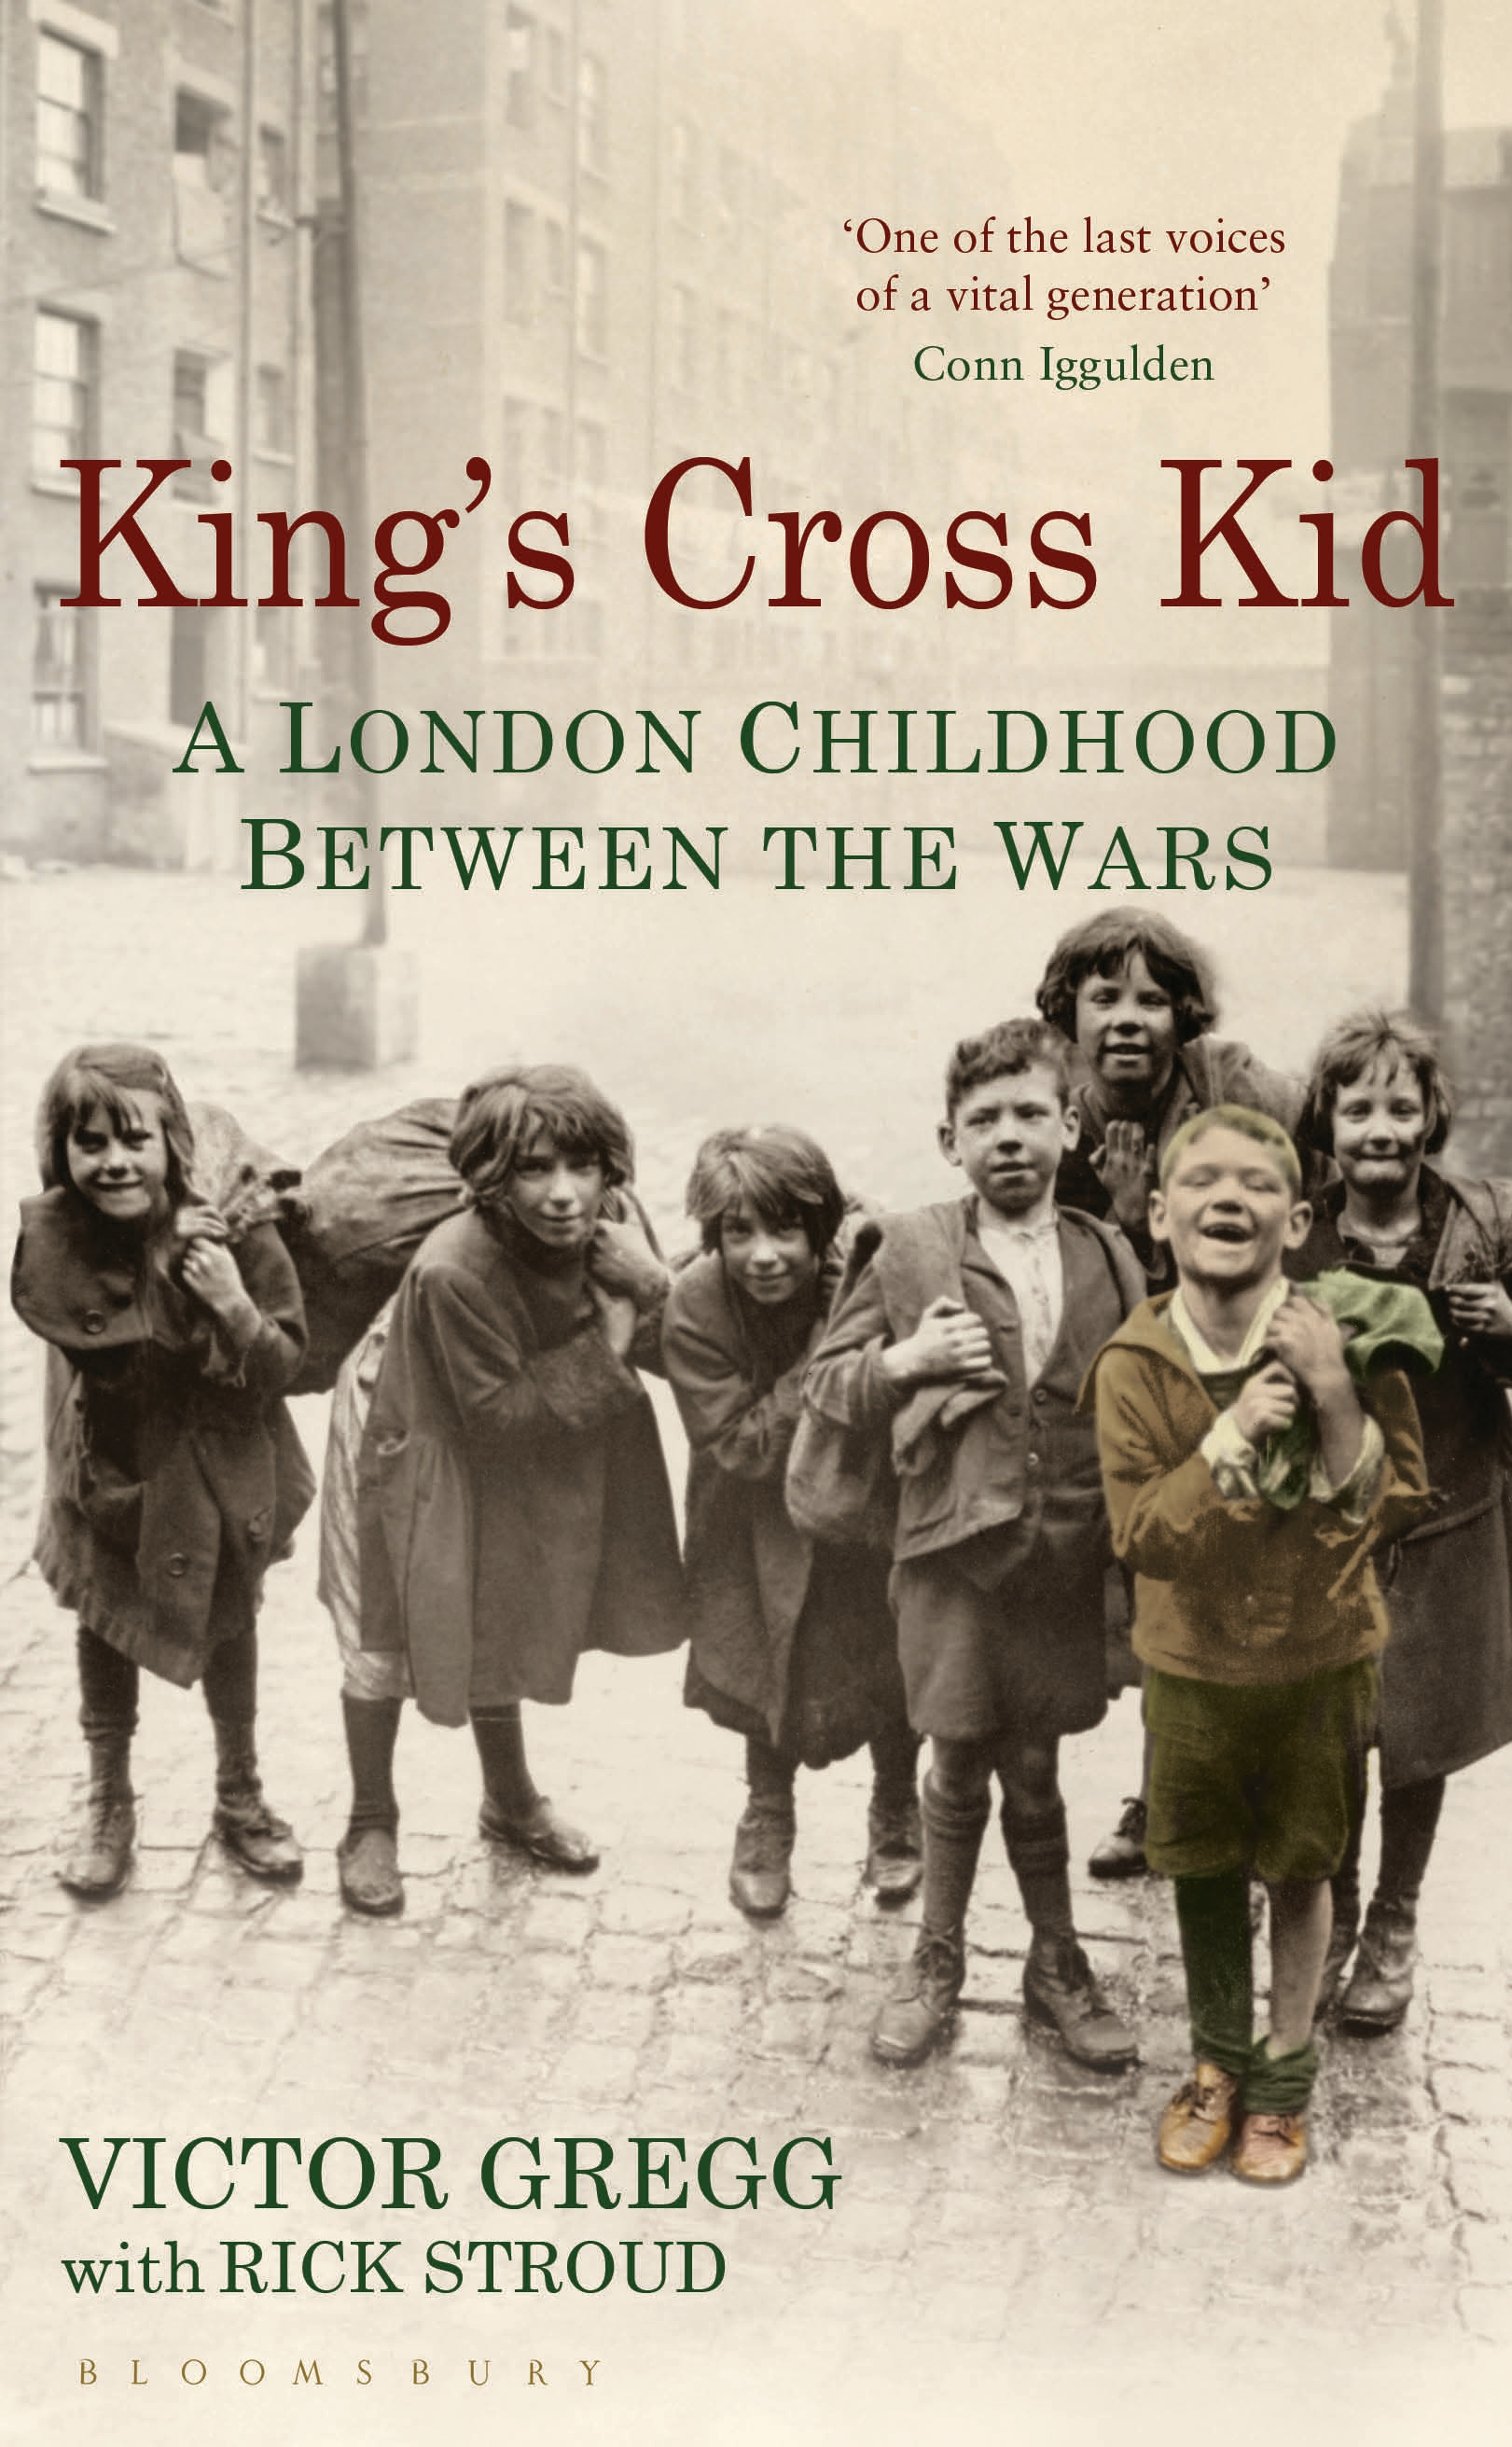 King's Cross Kid